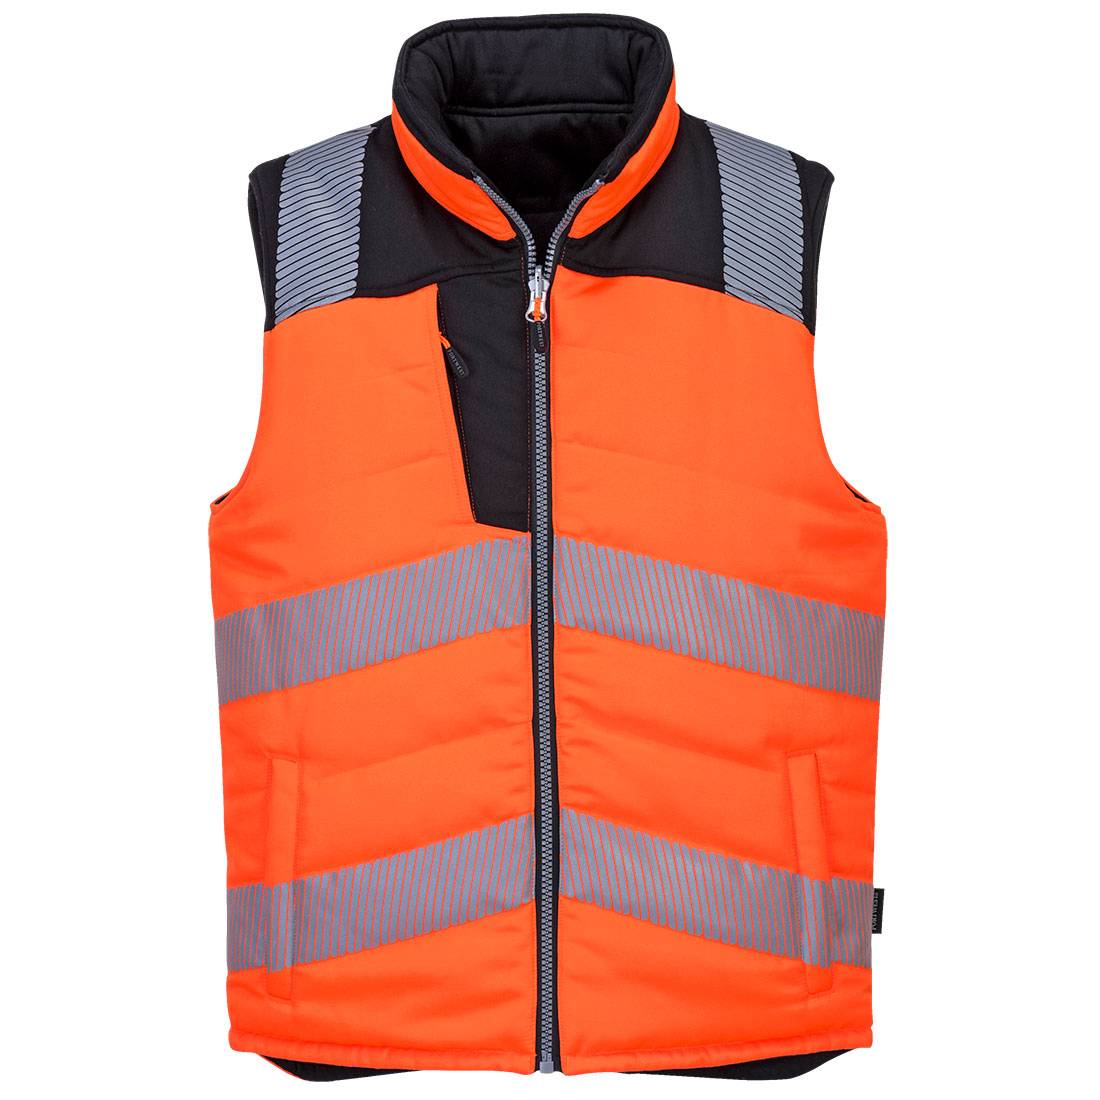 PW3 Hi-Vis Reversible Bodywarmer Orange/Black Small